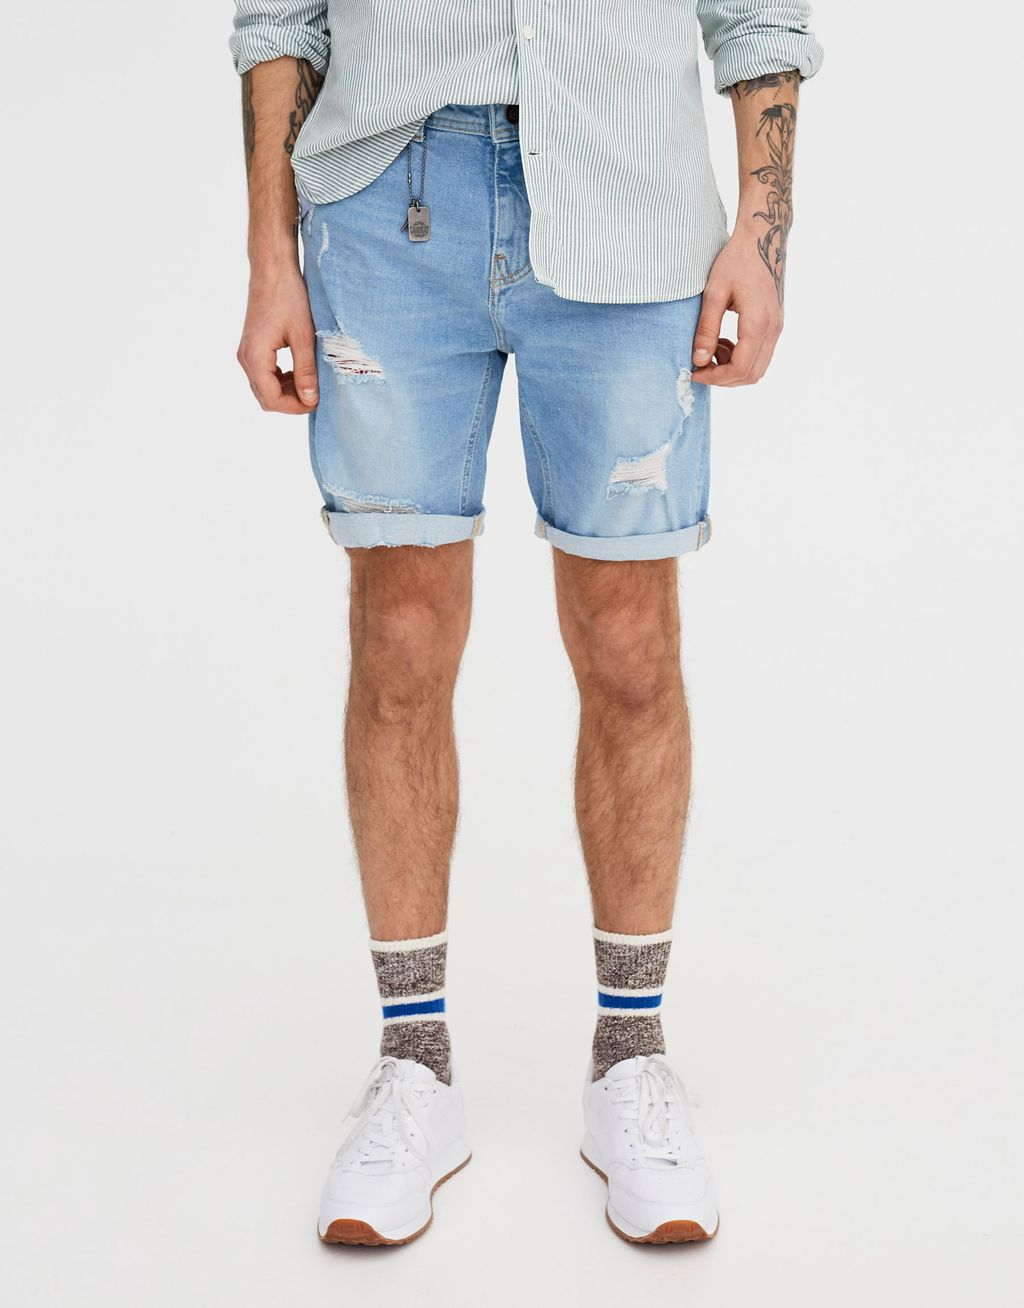 a2d19865b0 Slim Fit Comfort Denim Bermuda Shorts With Rips - Pull & Bear | reve